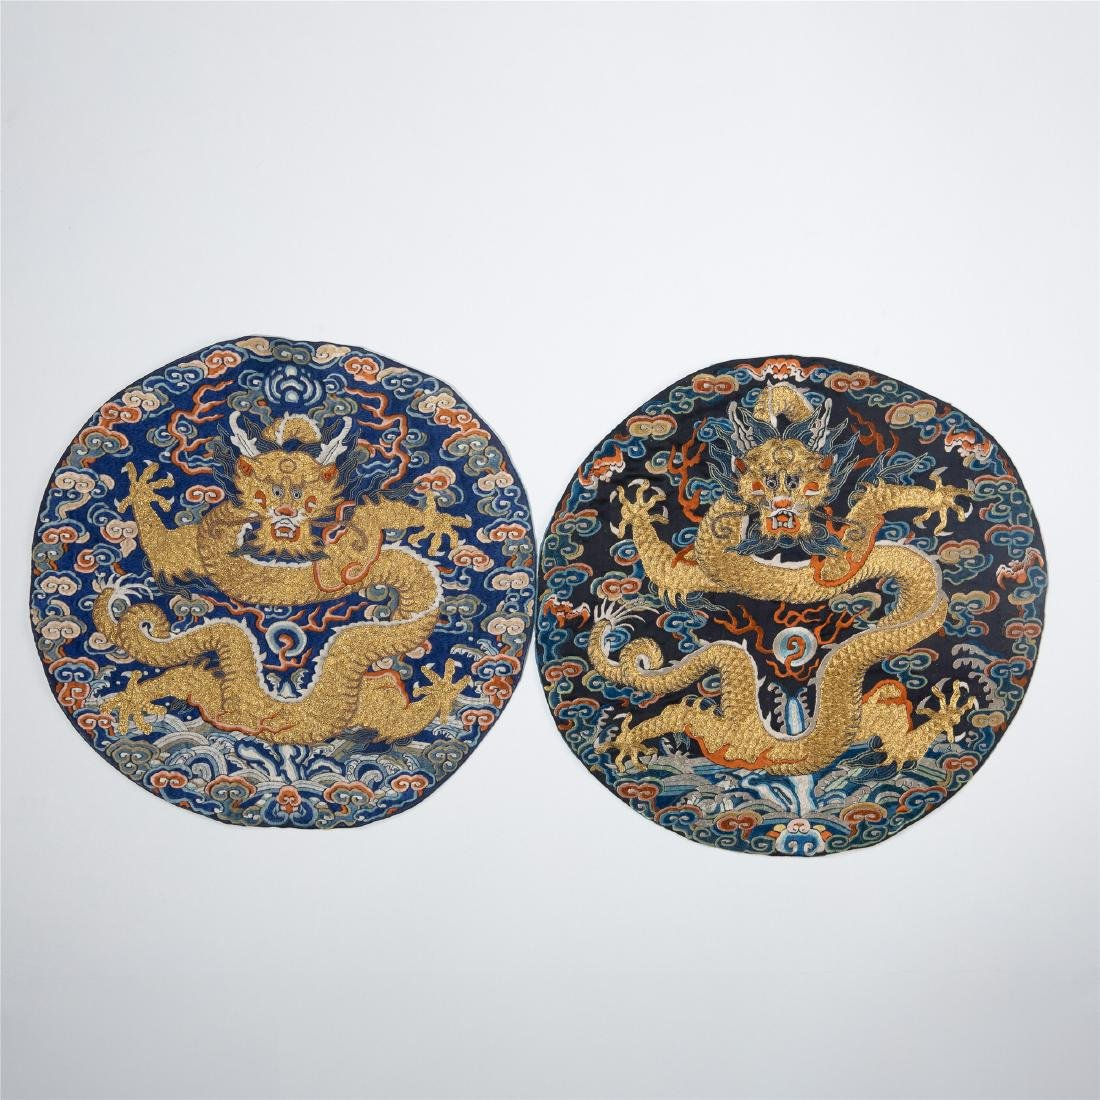 PAIR OF CHINESE EMBROIDERY DRAGON MANDERIAN OFFICIAL